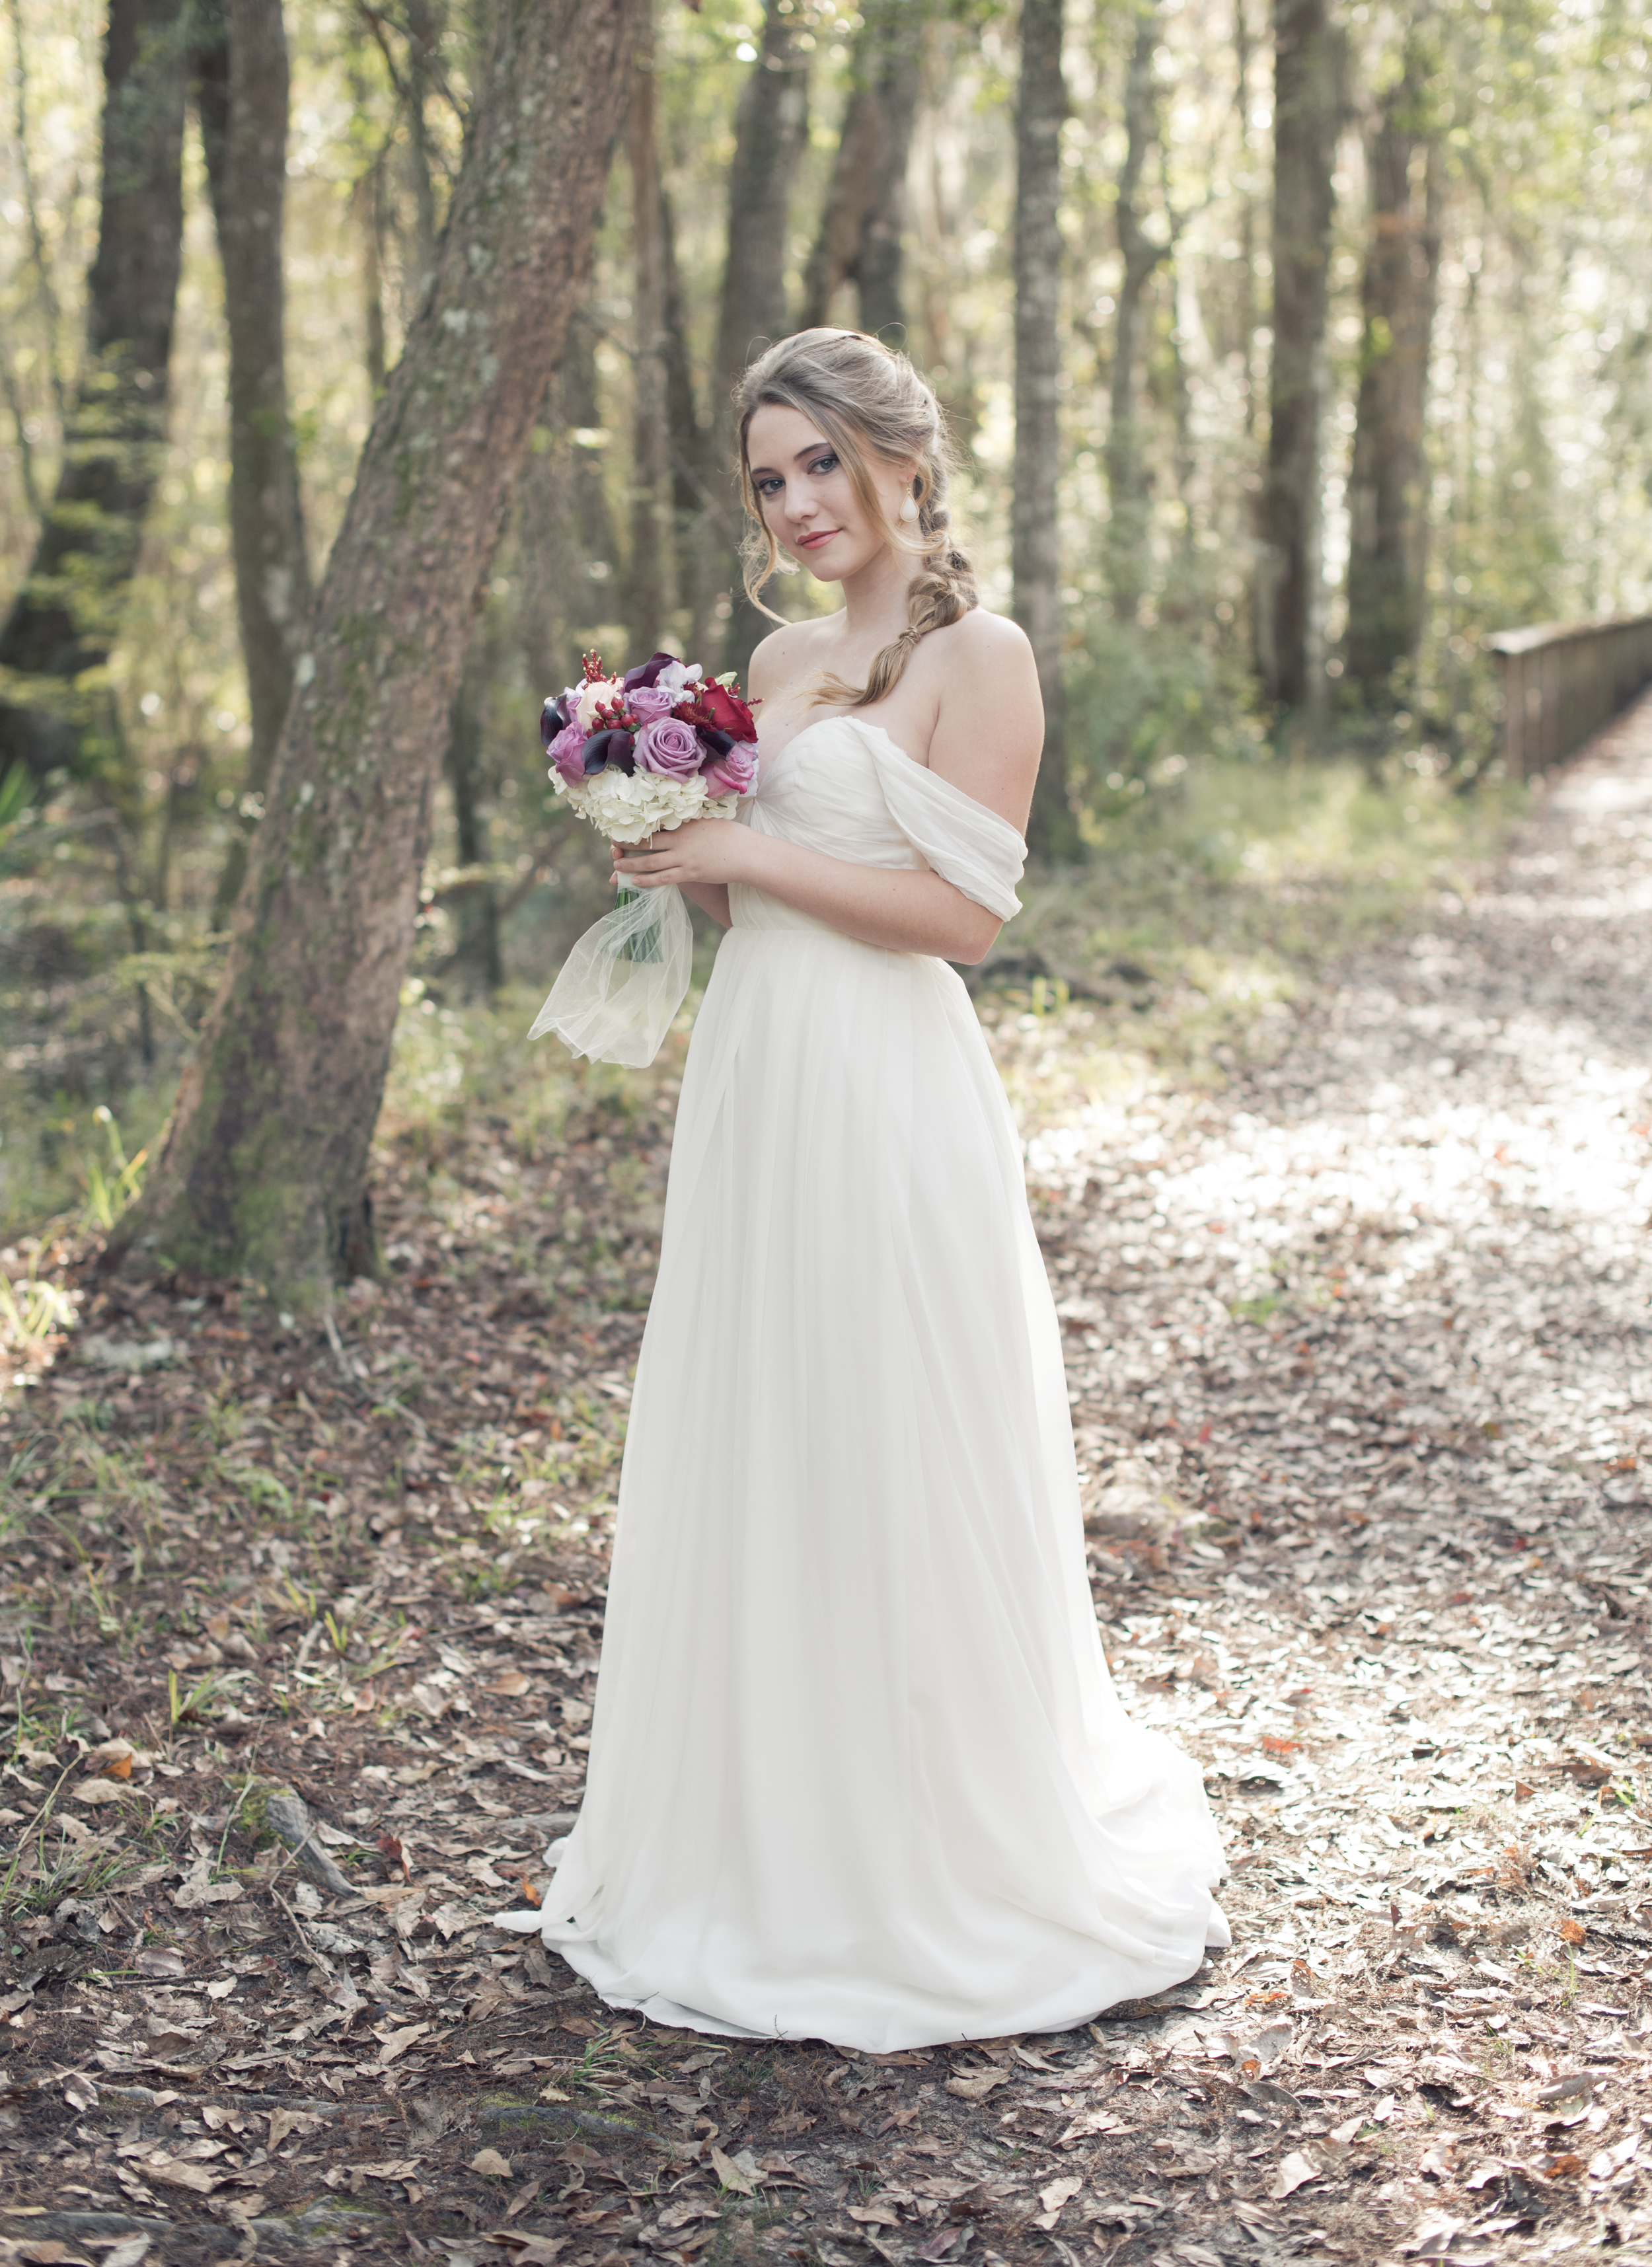 5-D-Photography-lafayette-sarah-seven-off-the-shoulder-wedding-dress-Gardenias-hilton-head- Ogeechee-Canal-Trail-ivory-and-beau-bridal-boutique-savannah-wedding-dresses-savannah-bridal-boutique-savannah-weddings-hilton-head-bridal-5.jpg